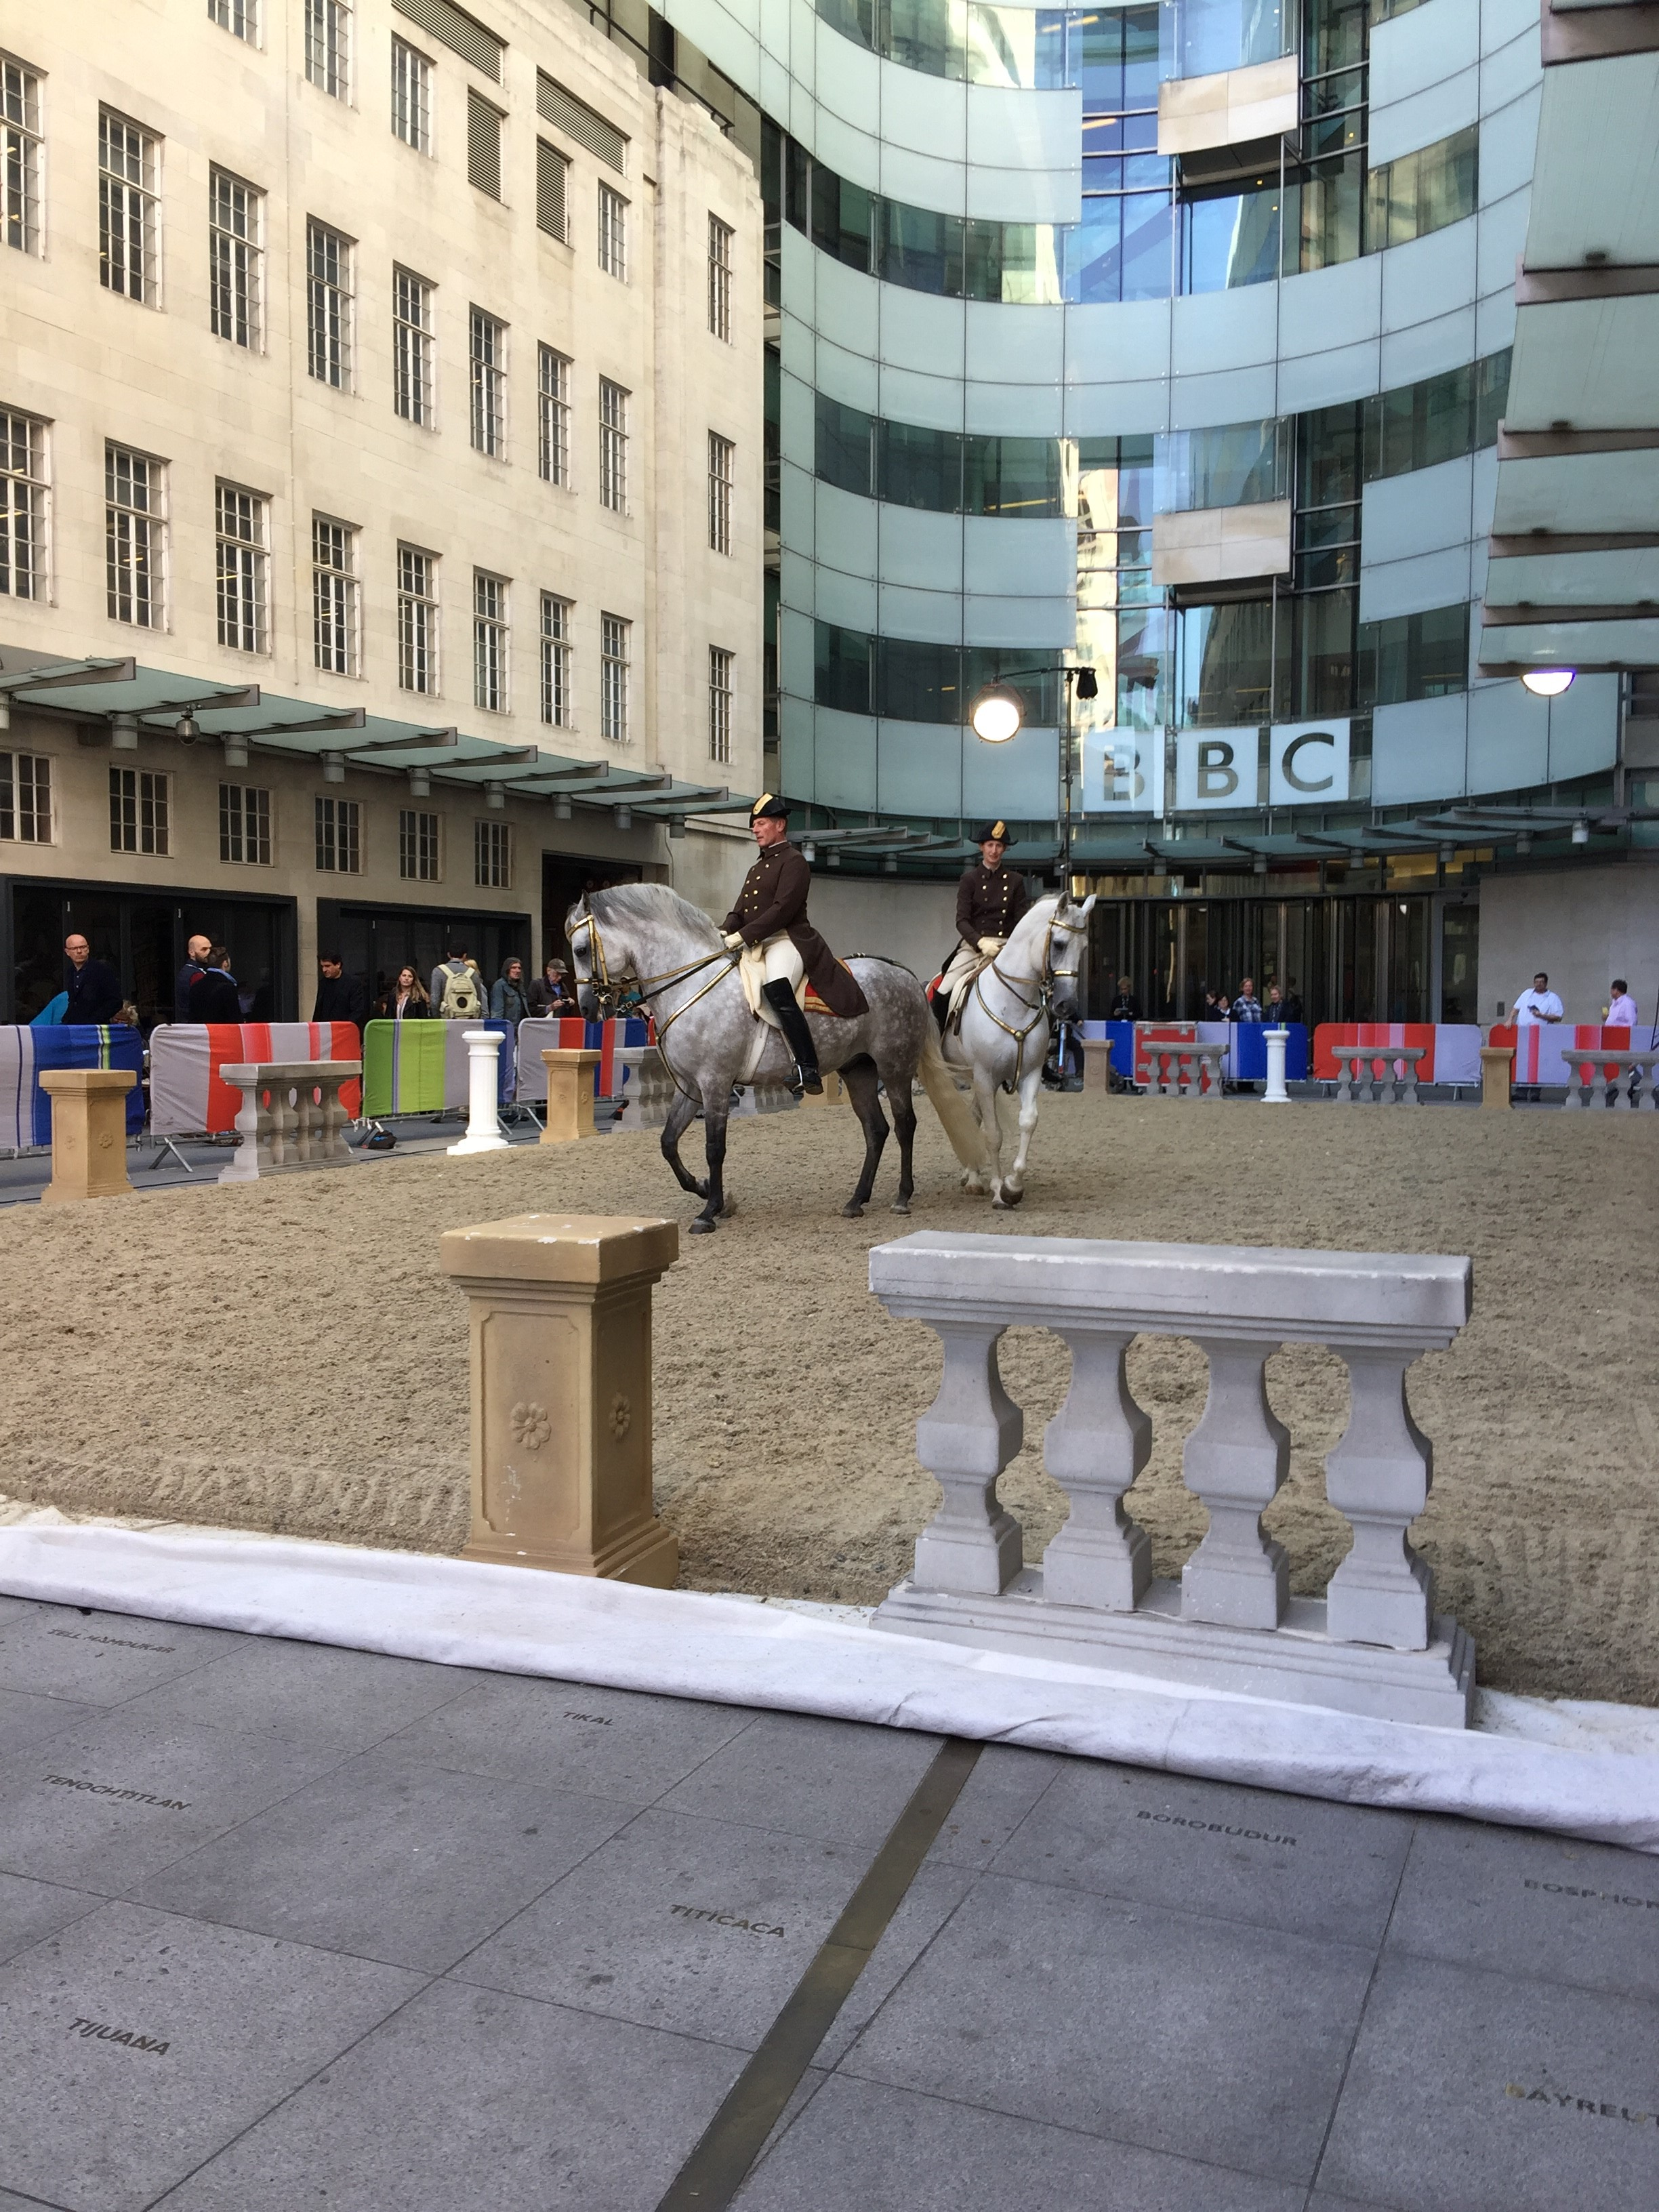 srs-outside-bbc-broadcasting-house